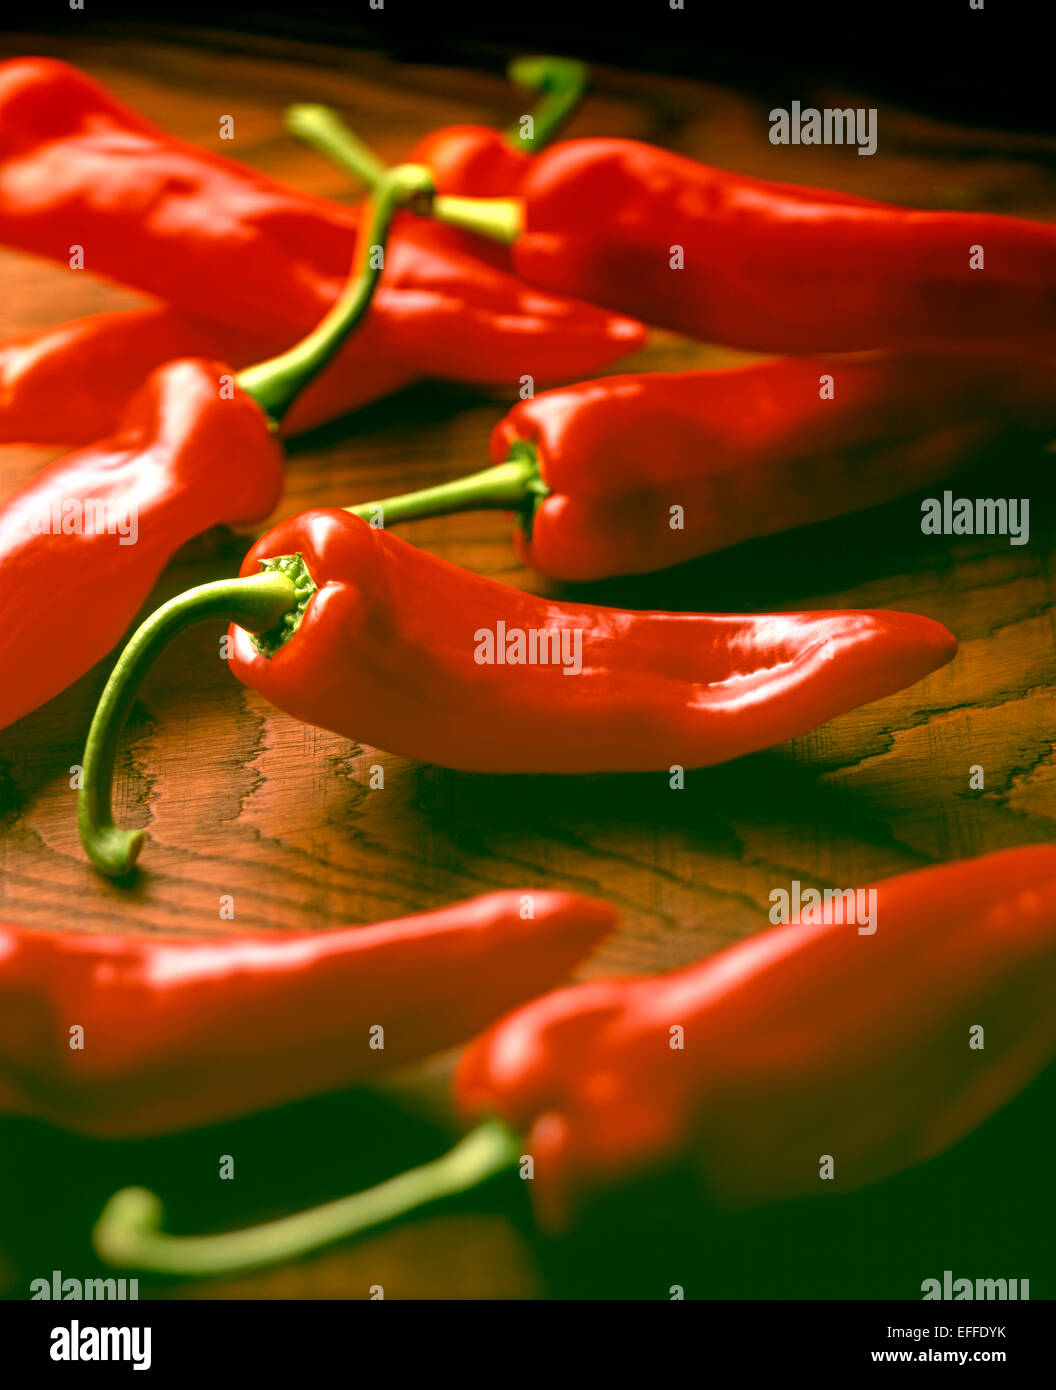 Ramiro peppers red - Stock Image